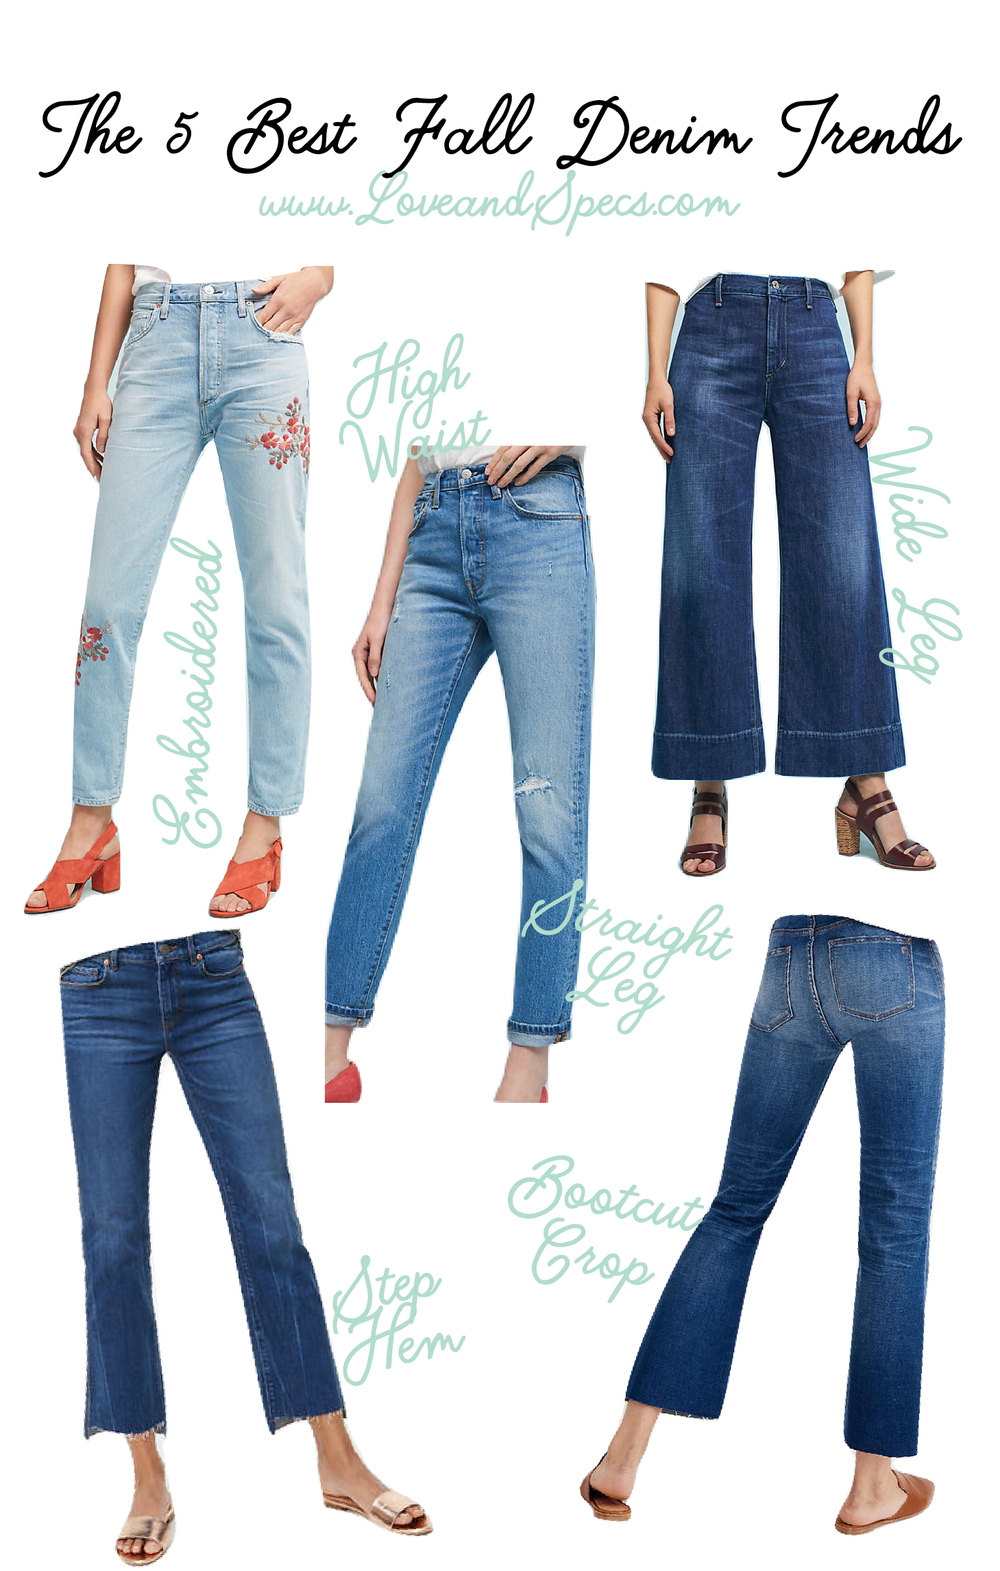 Fall-Denim-Trends.Jpeg